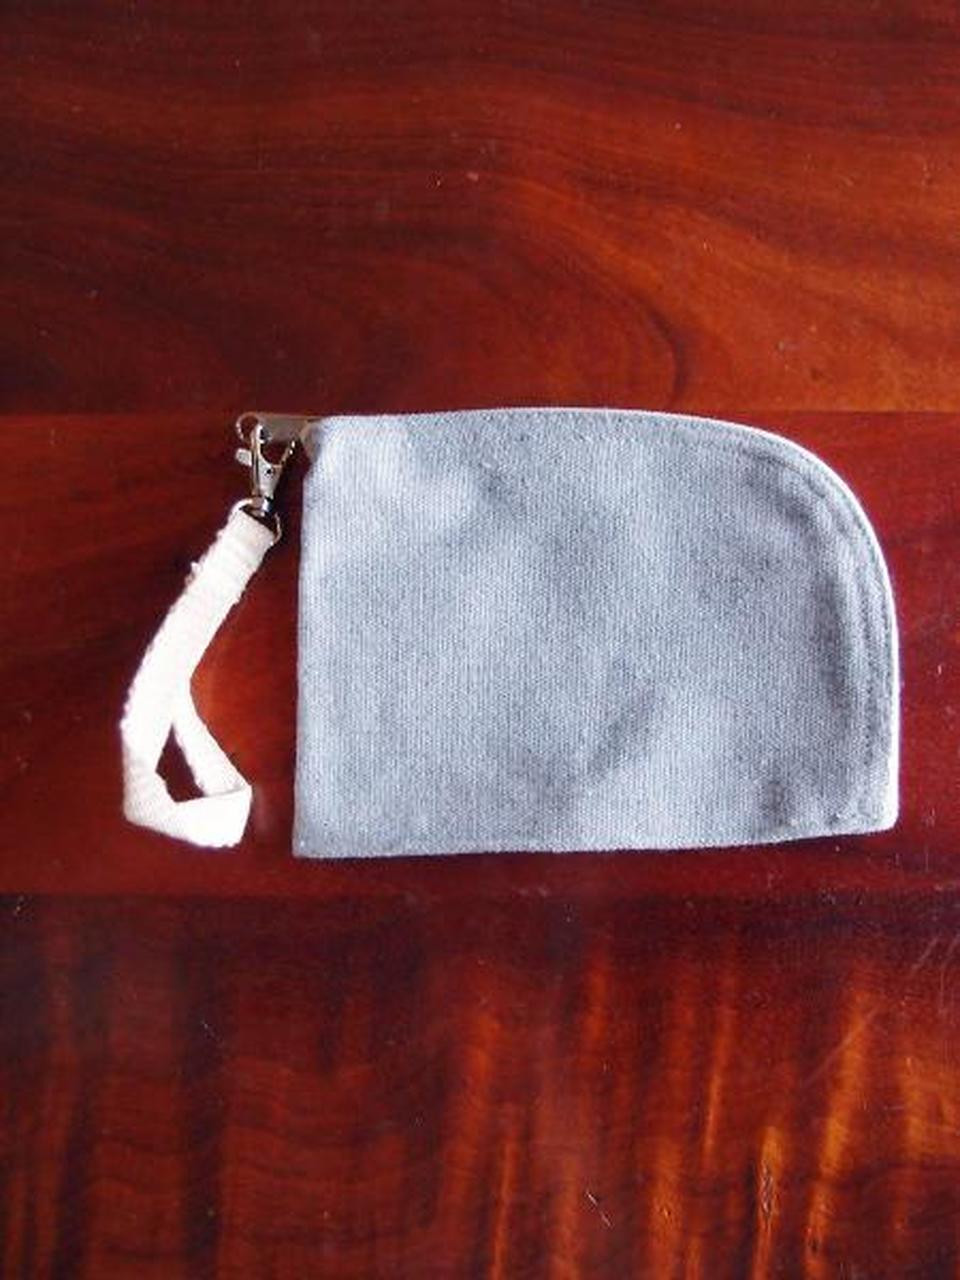 Recycled Canvas Curved Zippered Pouch with Wristlet B689-70, Wholesale Zipper Pouches | Packaging Decor